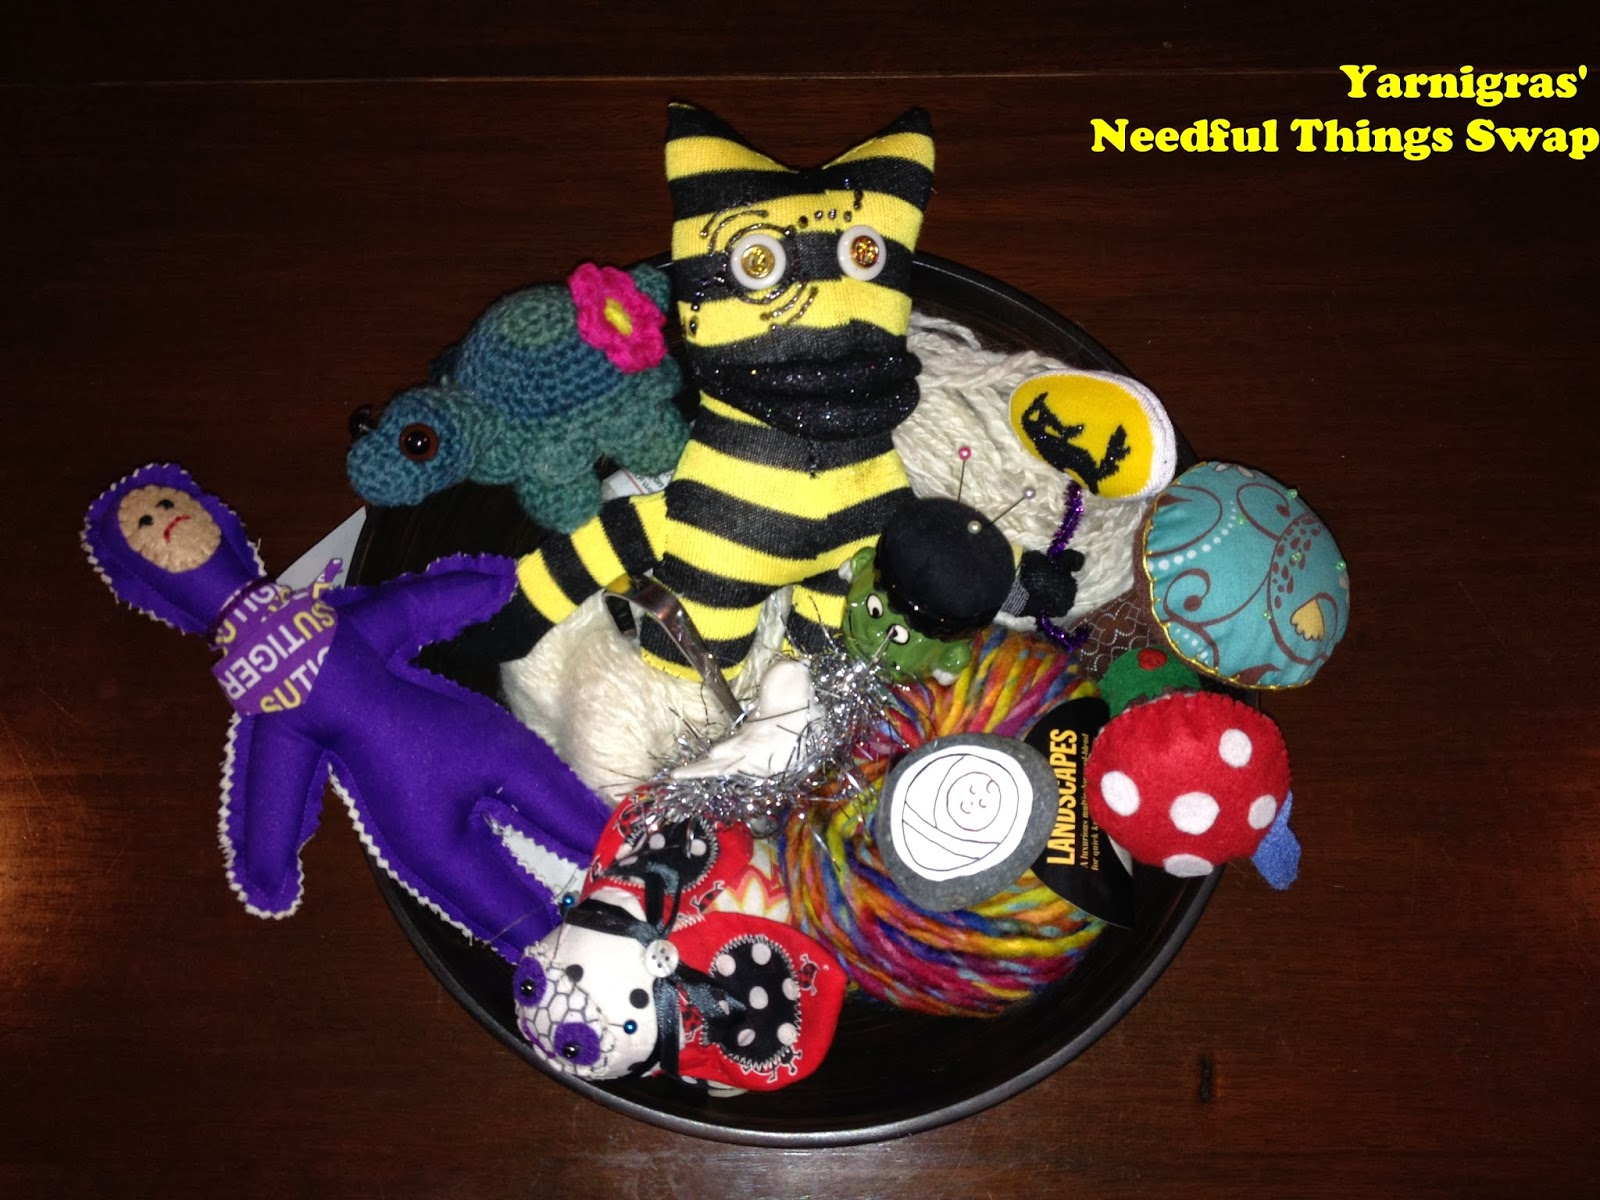 Needful Things Swap